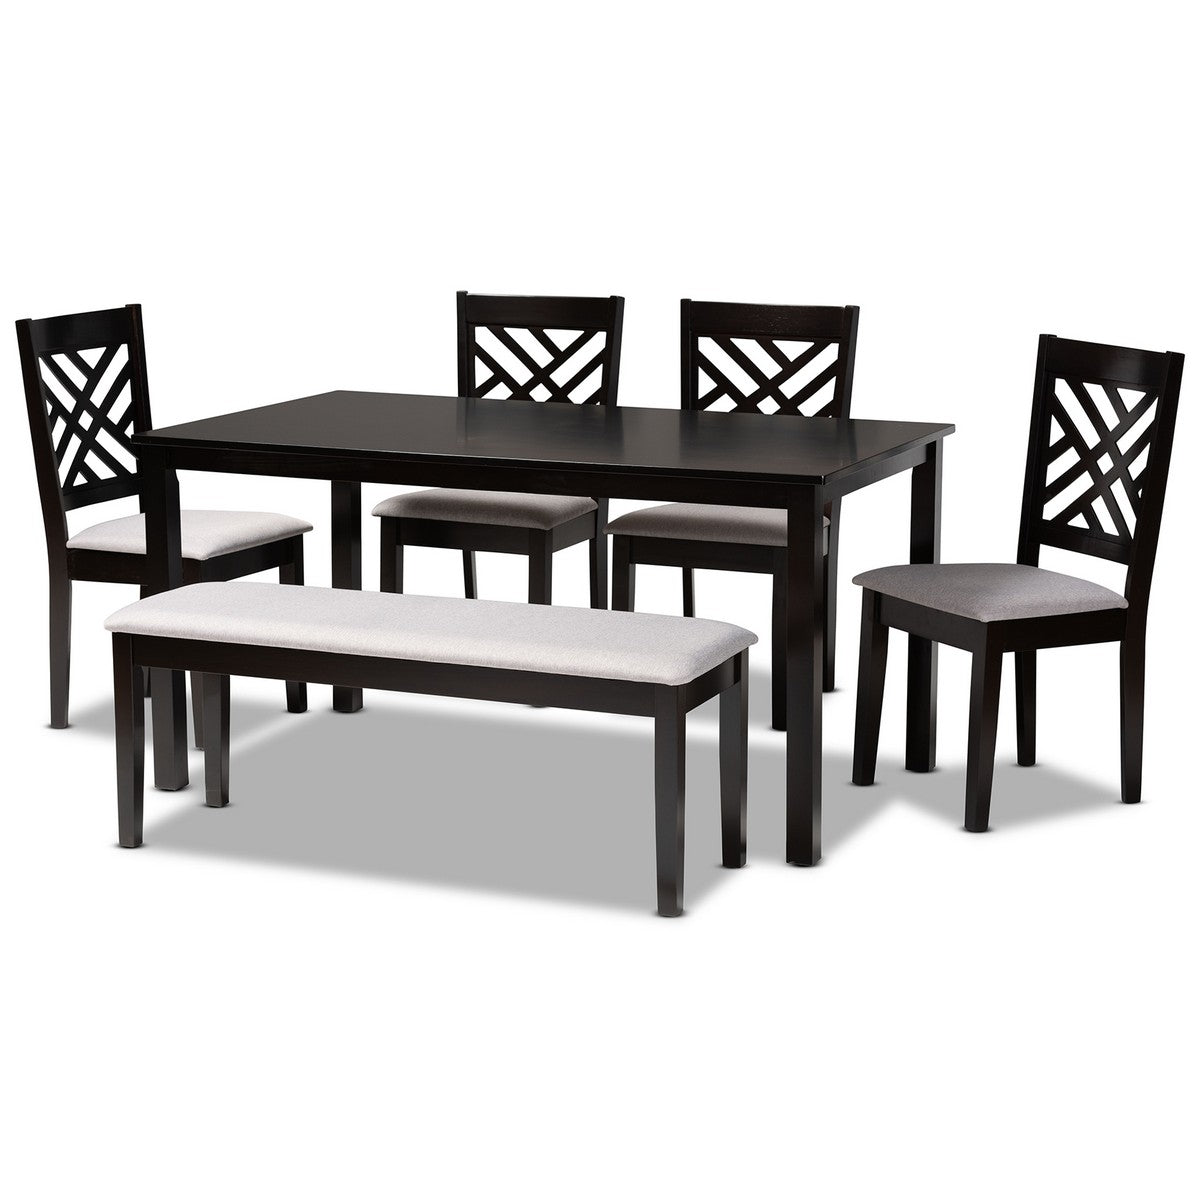 Baxton Studio Gustavo Modern and Contemporary Grey Fabric Upholstered and Dark Brown Finished Wood 6-Piece Dining Set Baxton Studio-Dining Sets-Minimal And Modern - 1